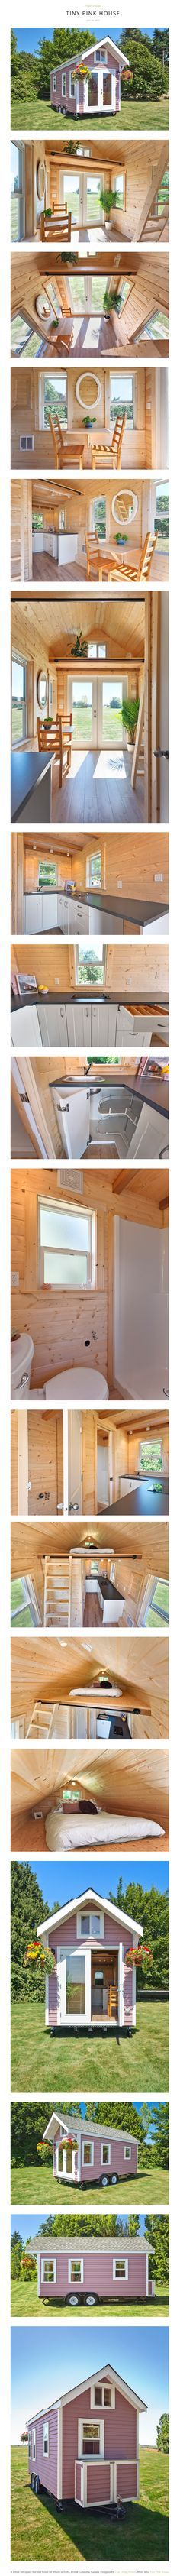 #tumbleweed #tinyhouses #tinyhome #tinyhouseplans TINY PINK HOUSE via TINY HOUSE SWOON... tinyhouseswoon.com/tiny-pink-house — A lofted 160 square feet tiny house on wheels in Delta, British Columbia, Canada.... Designed by Tiny Living Homes.... twitter.com/... More info. Tiny Pink House - tinyhousel